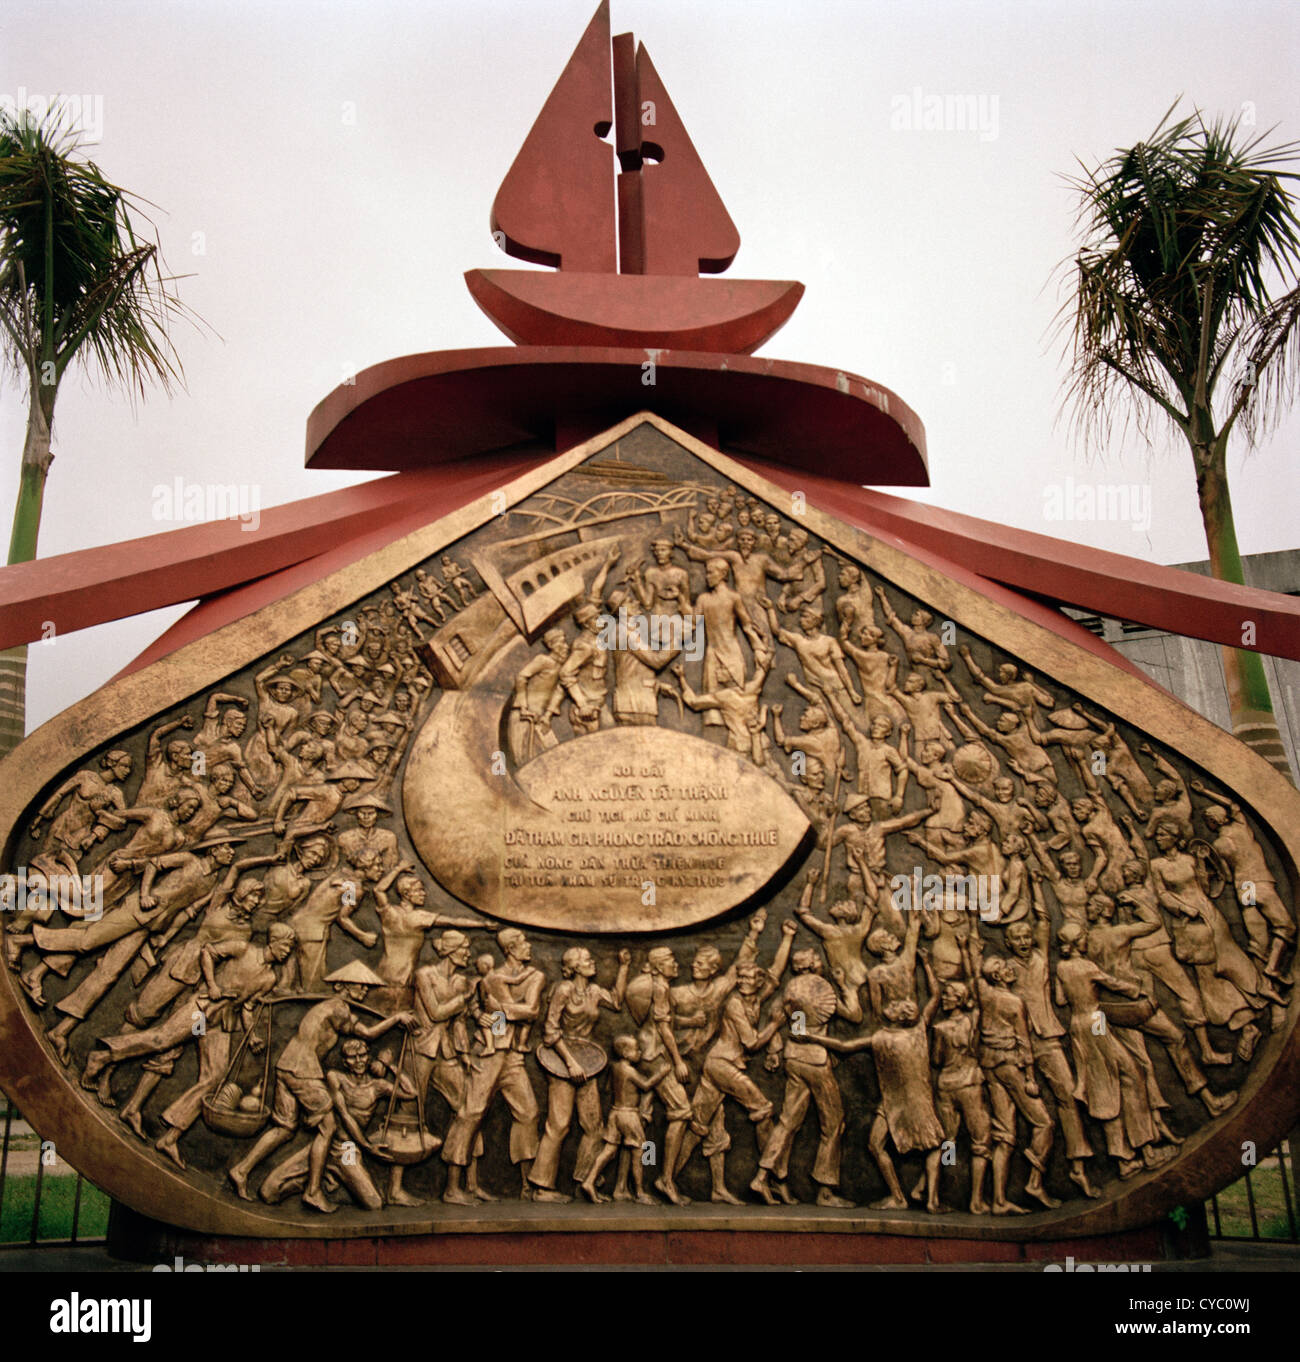 Vietnamese history art in Hue in Vietnam in Far East Southeast Asia. Culture Historical Sculpture Carving Work Workers - Stock Image